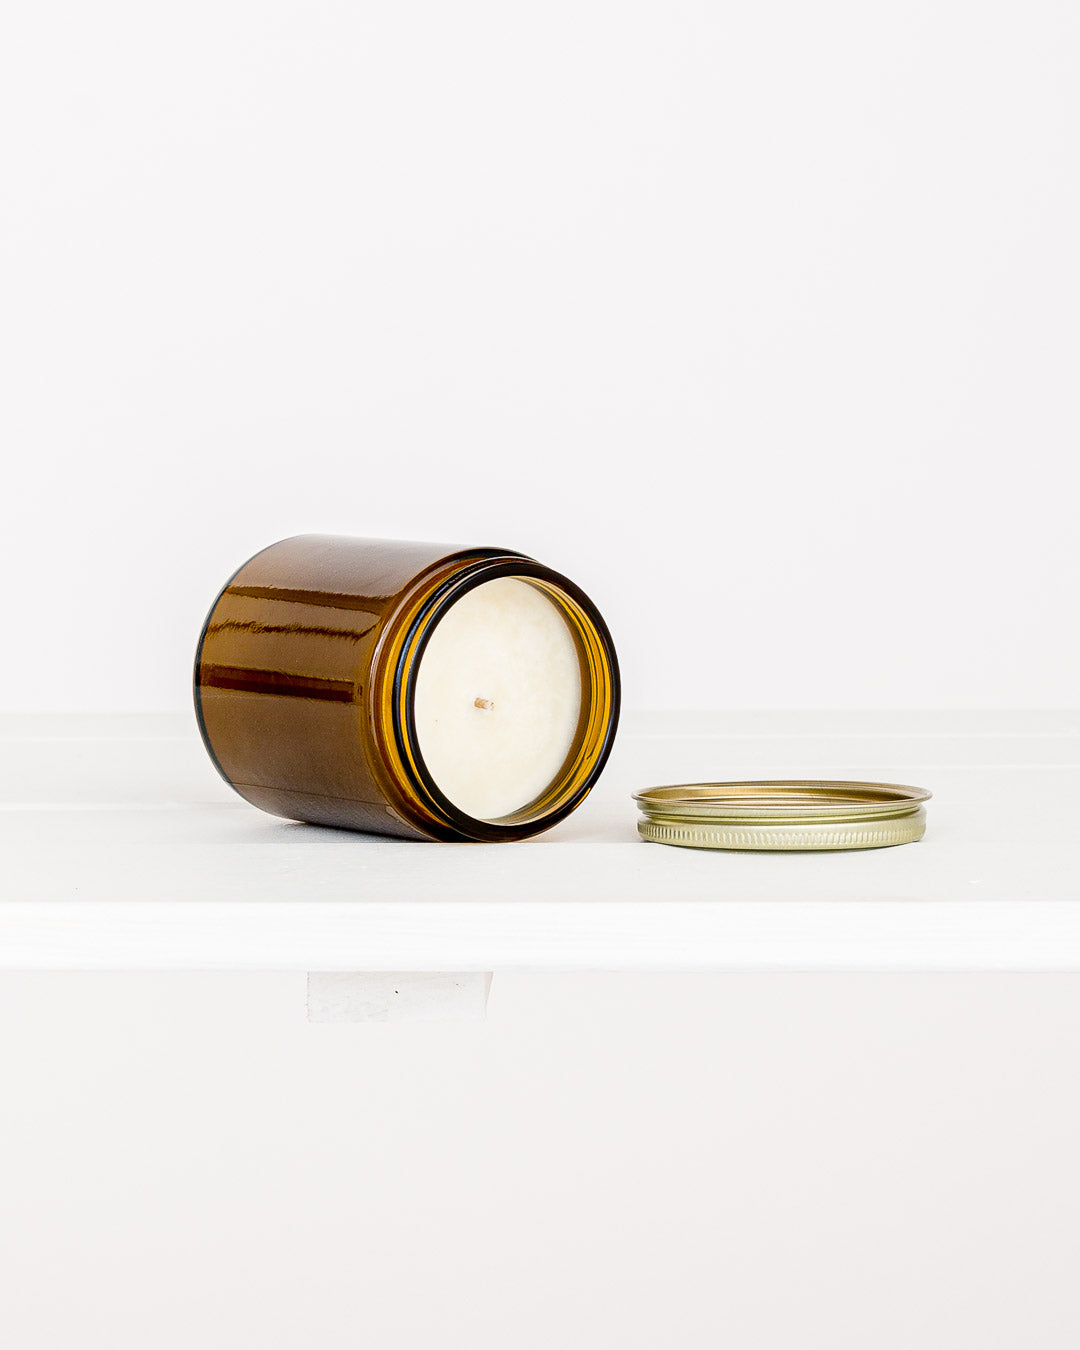 PF Candle Co. // Kerze No. 19 Patchouli & Sweetgrass